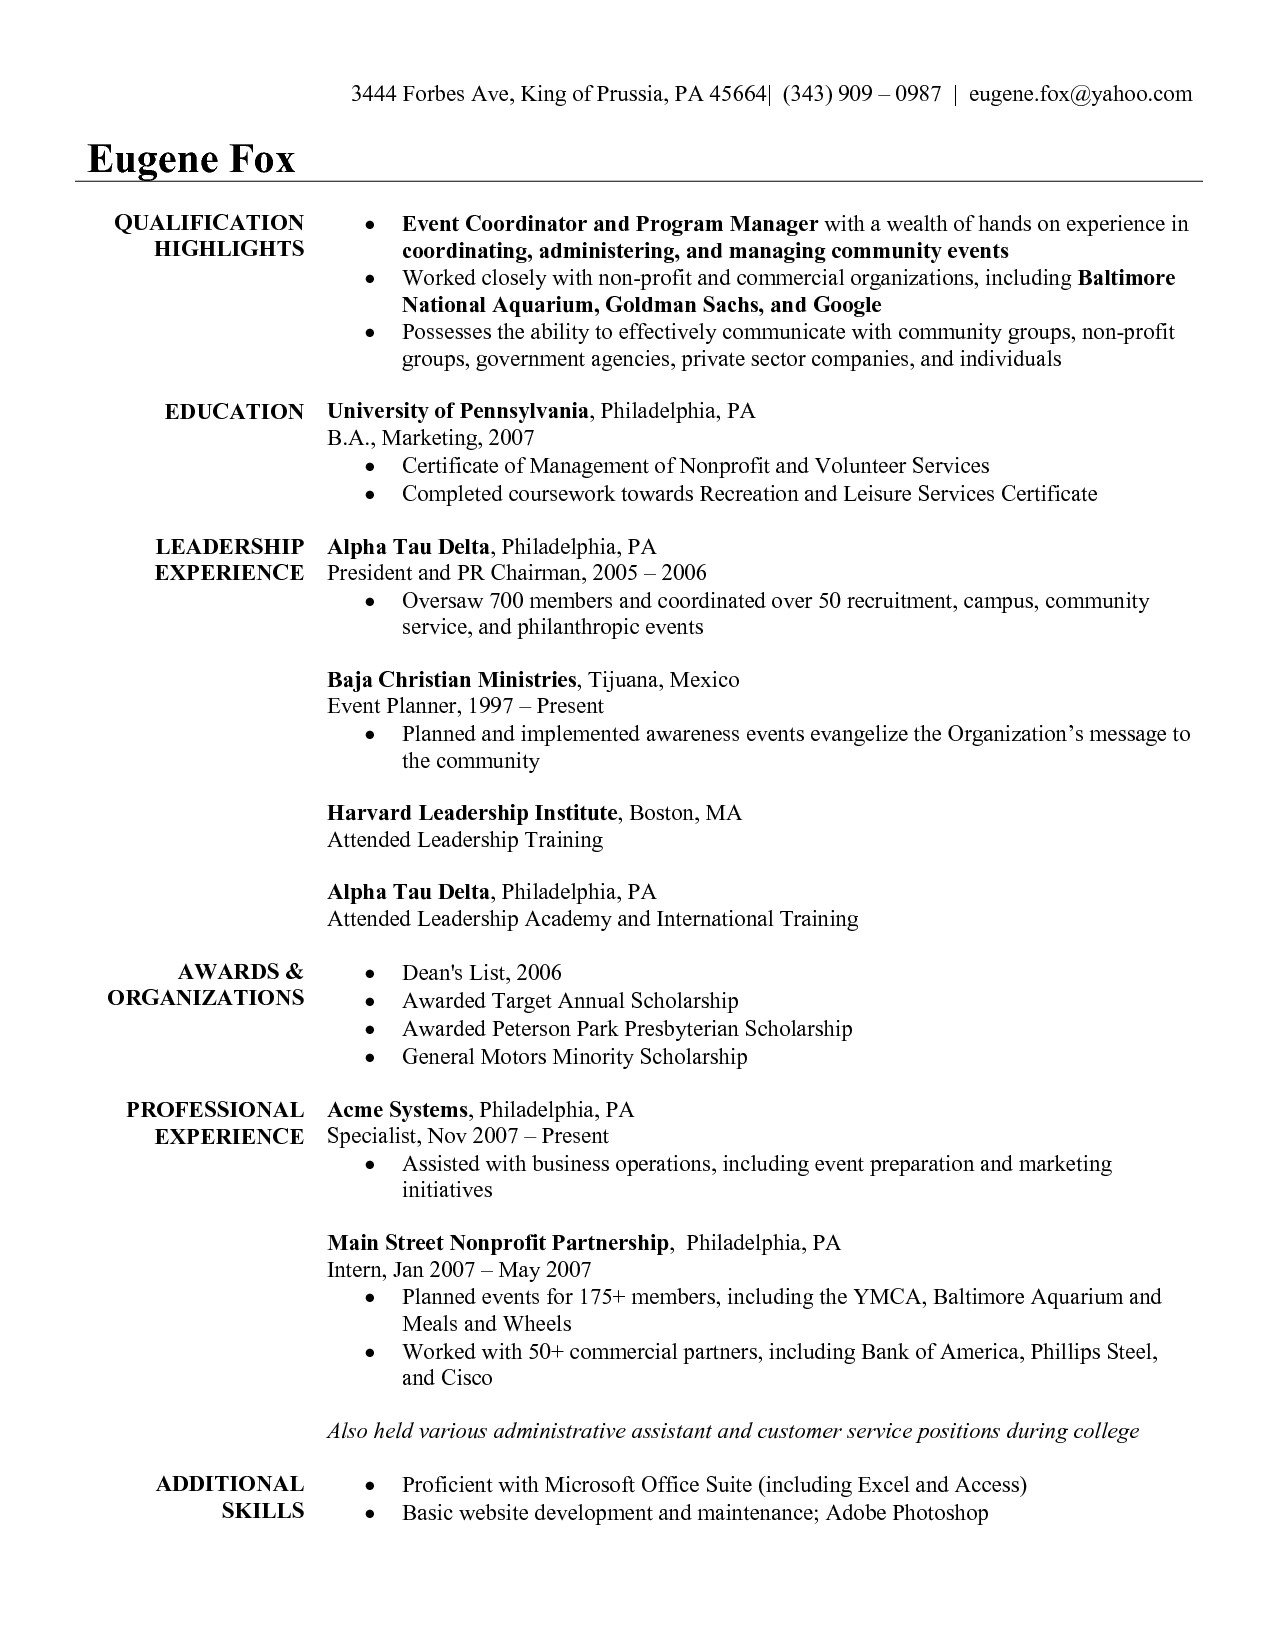 10 Gorgeous Marketing Ideas For Nursing Homes ideas collection nursing home admissions coordinator resume sample 2020